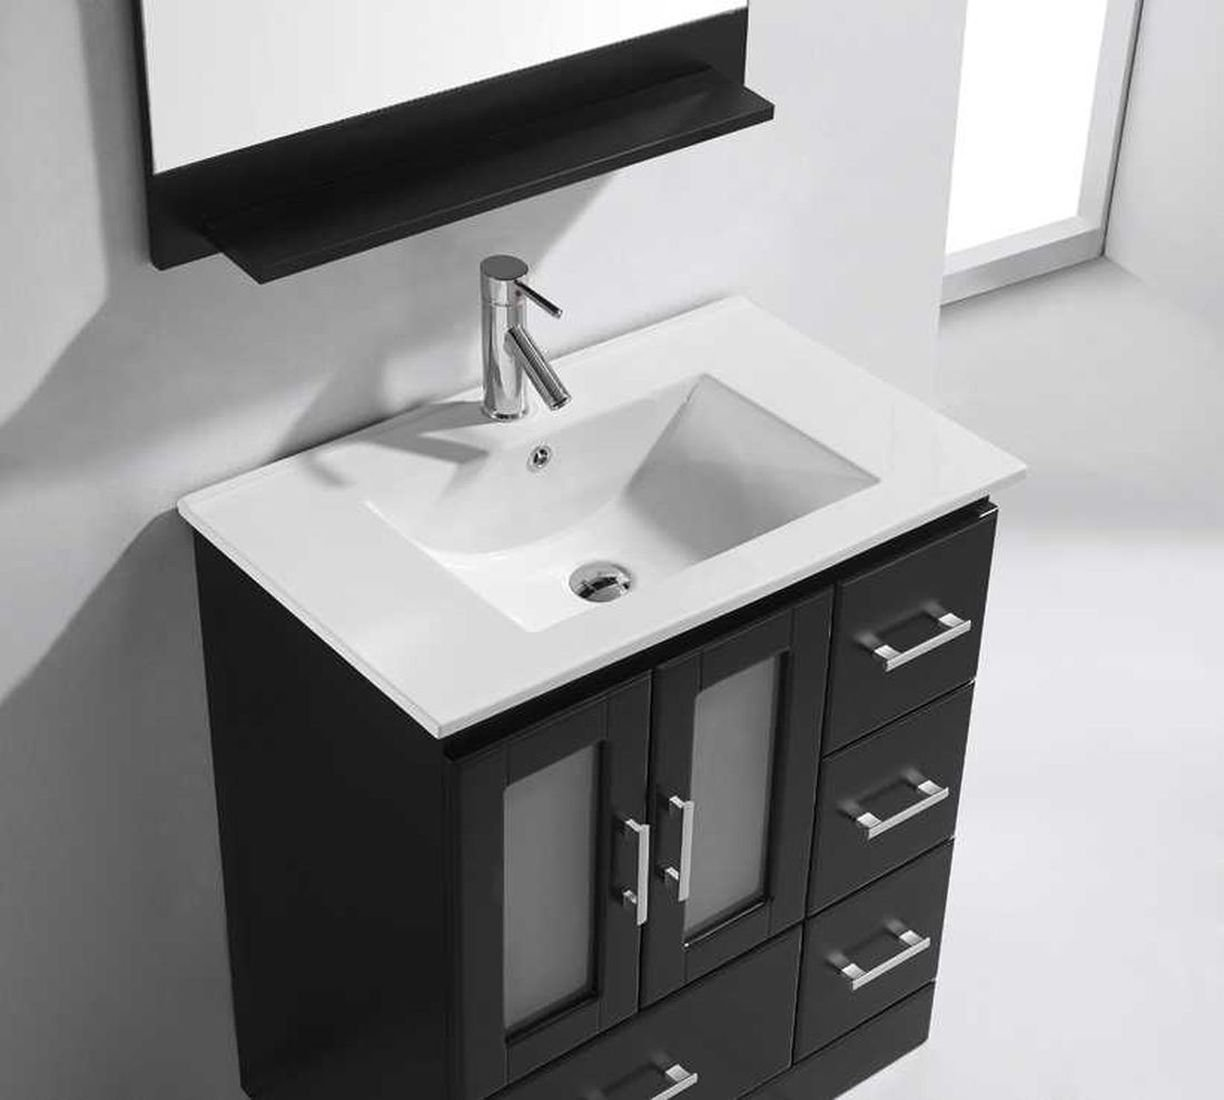 Inch Single Sink Bathroom Vanity on black single sink bathroom vanity, white single sink bathroom vanity, 30 inch white bathroom vanity, small single sink bathroom vanity, large single sink bathroom vanity,